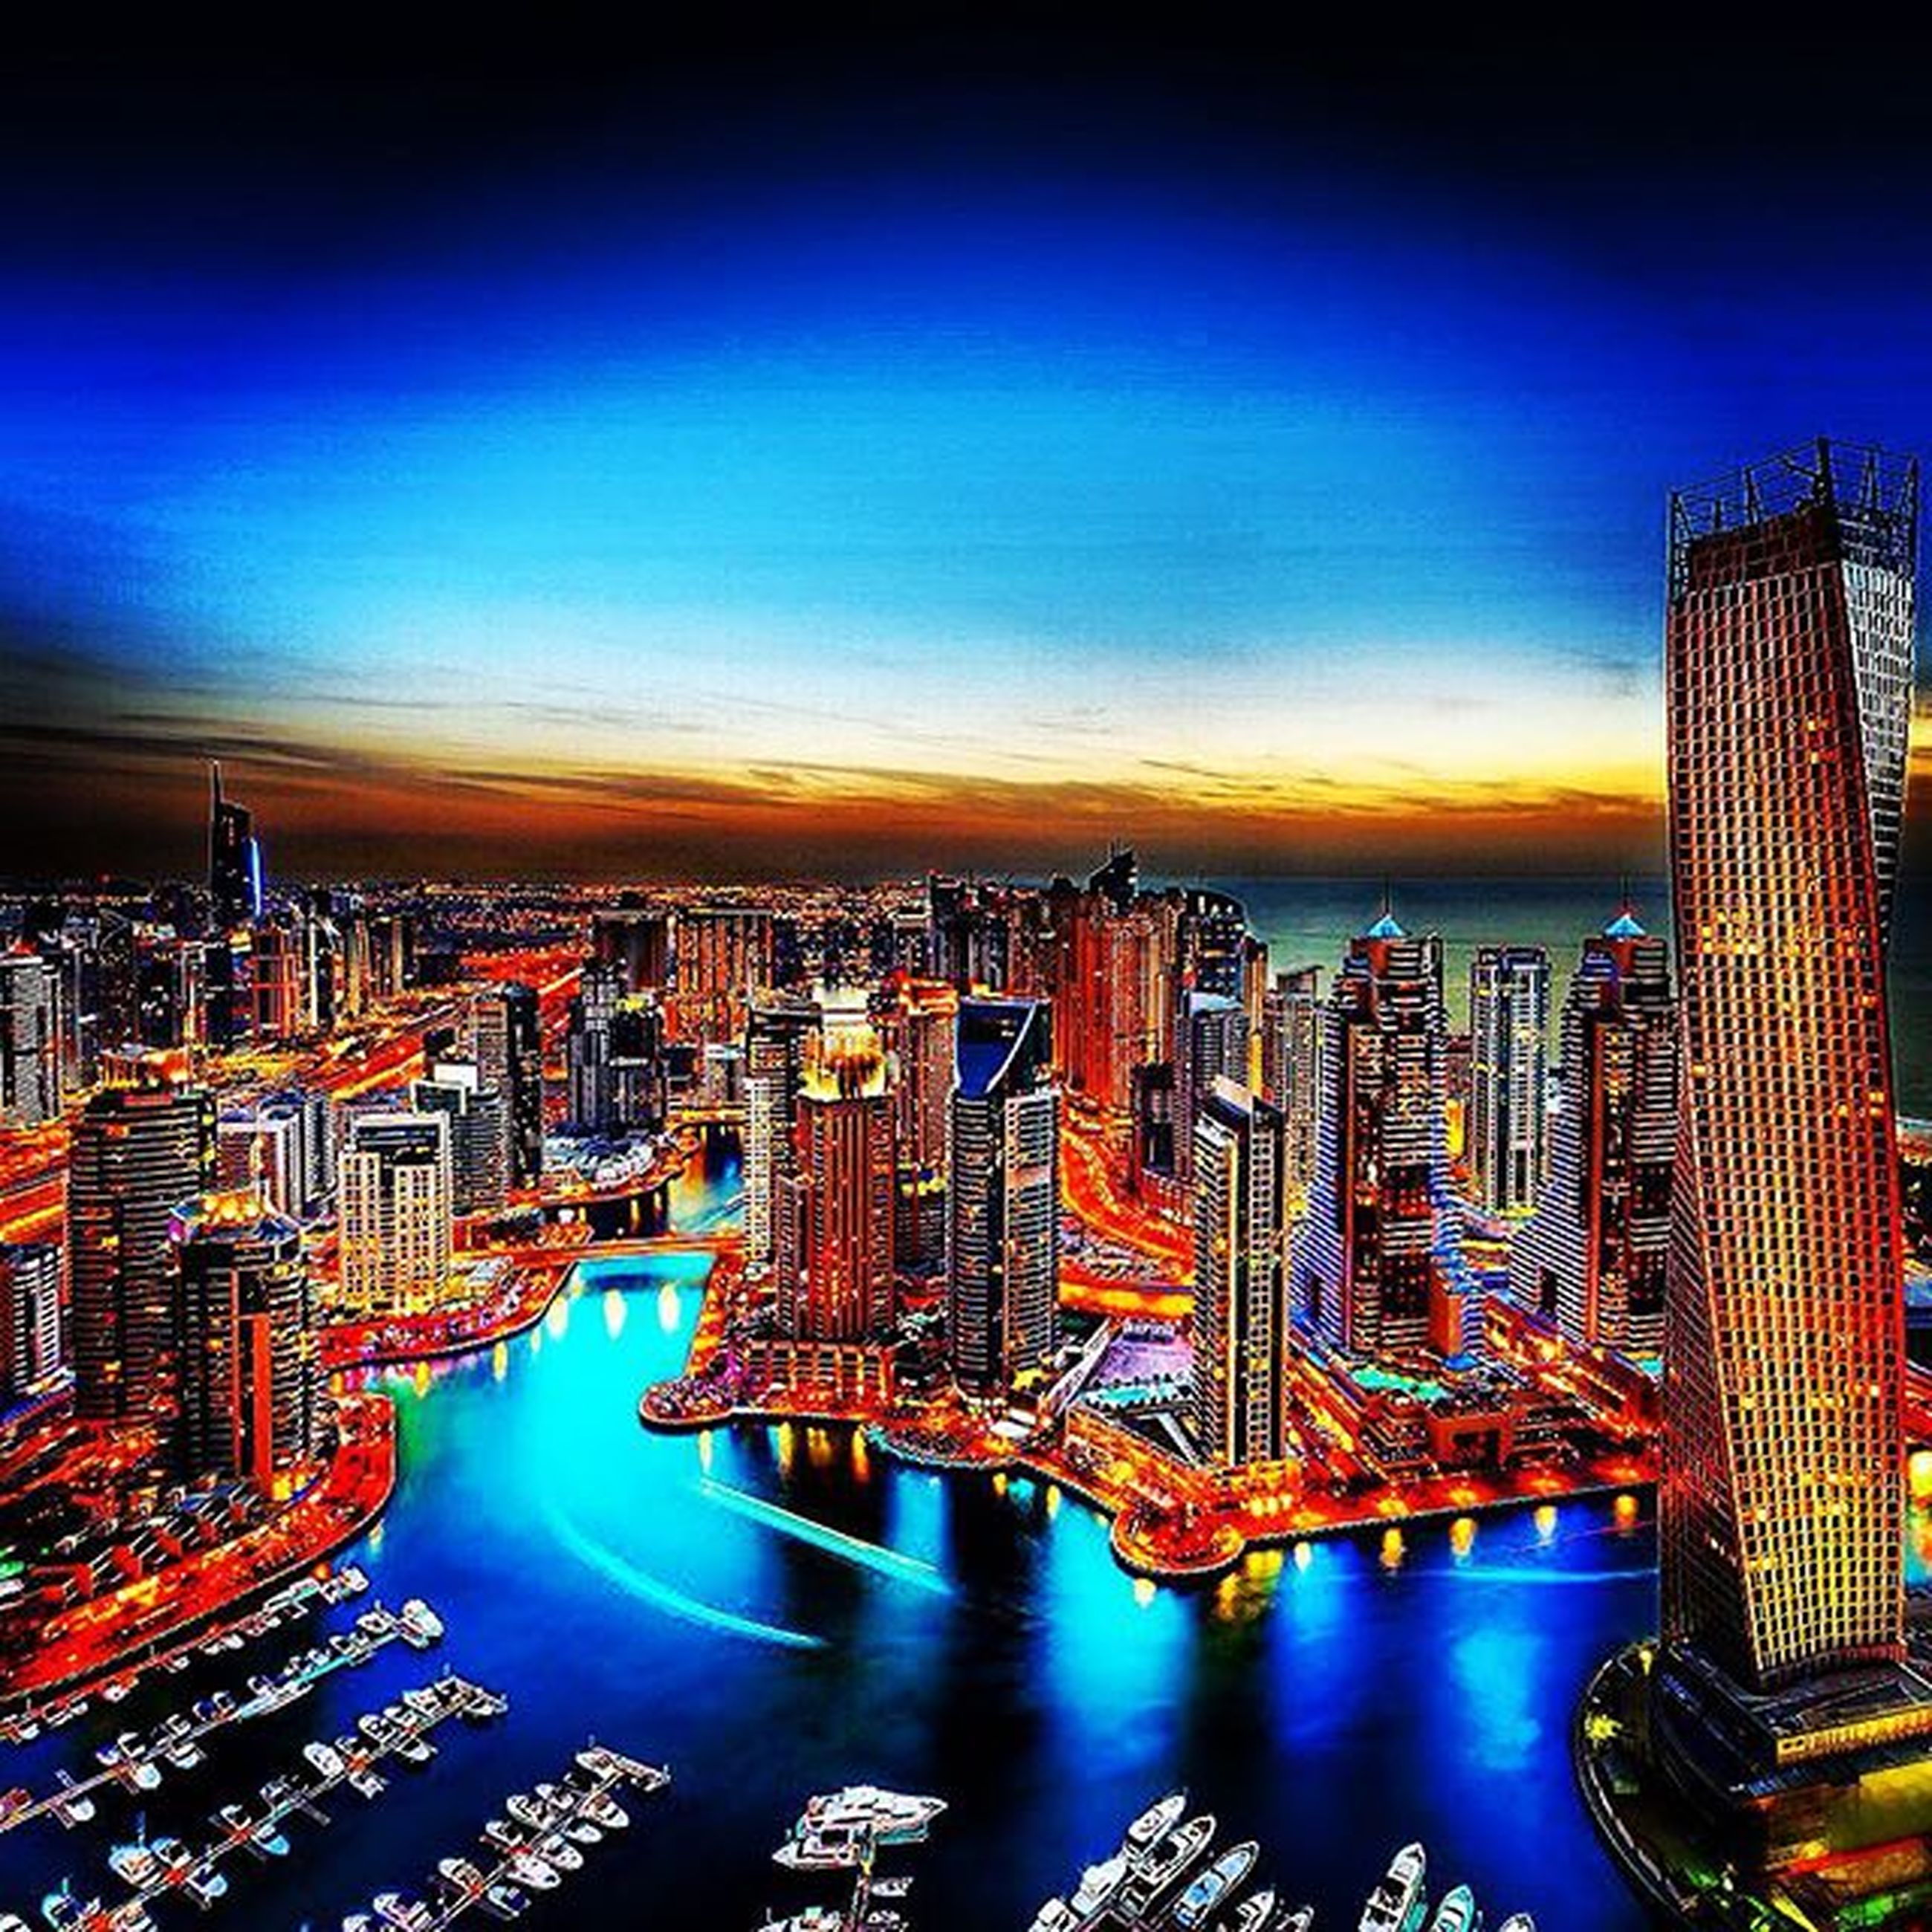 city, cityscape, architecture, skyscraper, building exterior, built structure, tall - high, tower, modern, illuminated, crowded, water, sky, office building, sunset, high angle view, capital cities, sea, financial district, urban skyline